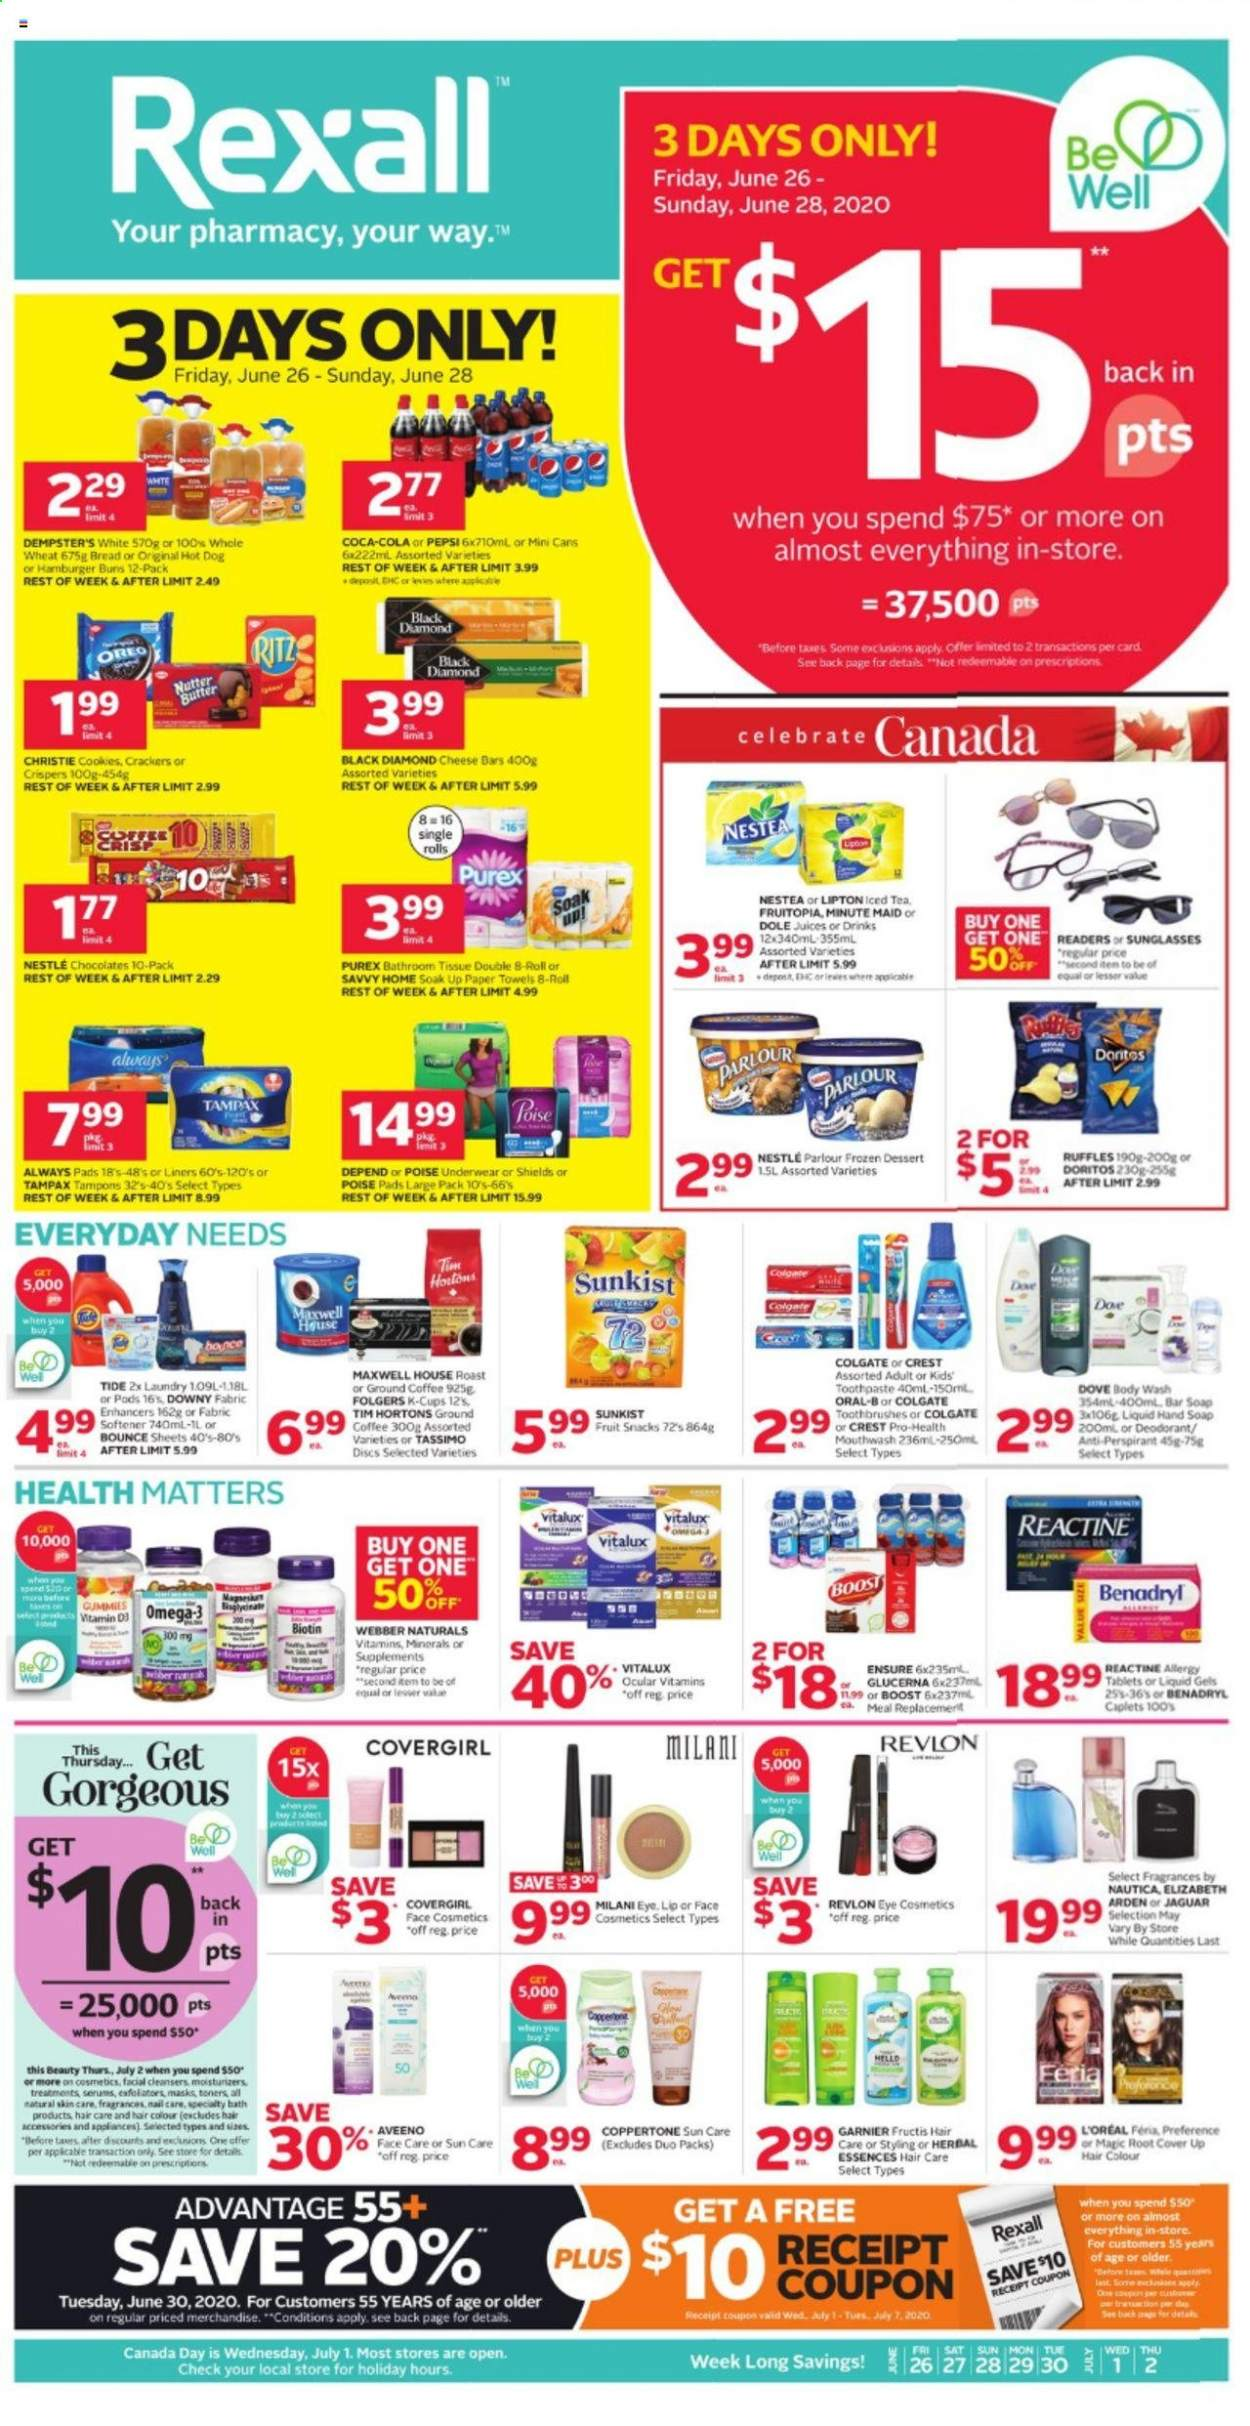 Rexall Flyer  - June 26, 2020 - July 02, 2020. Page 1.